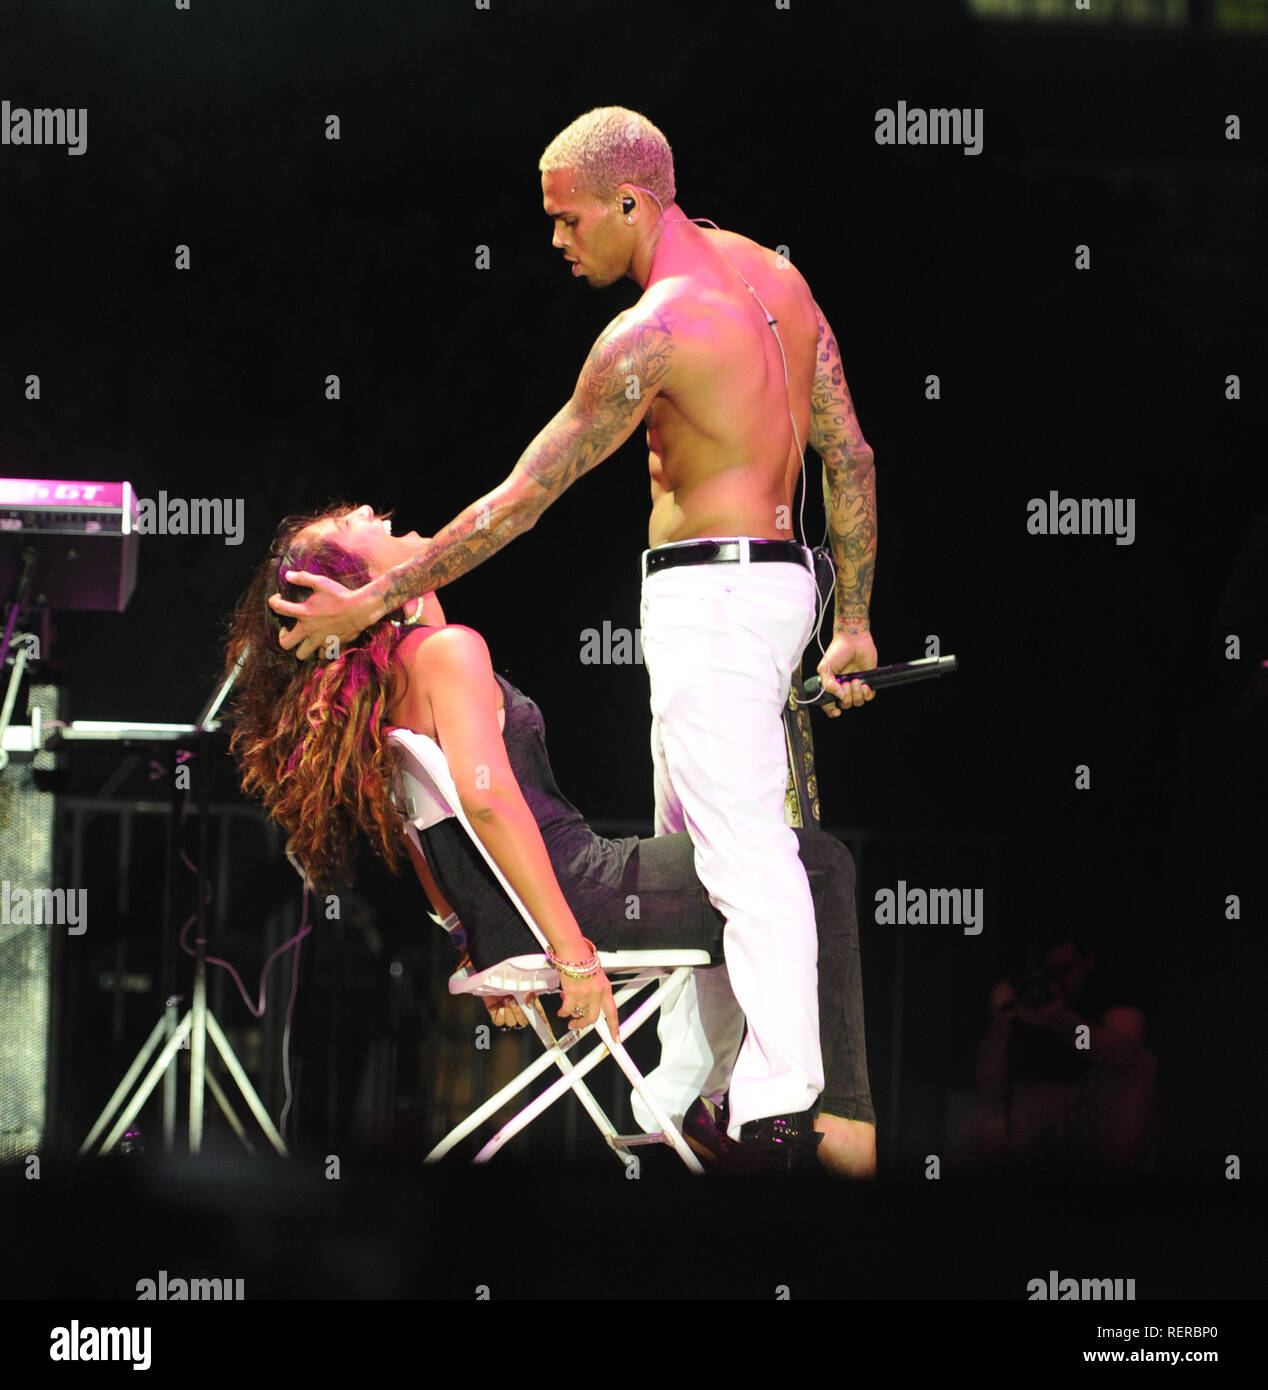 MIAMI, FL - MAY 28:  Chris Brown makes one fans day as he sticks his tounge in her mouth and bites her as he performs at the 5th anniversary of the Best Of The Best 'Spring Fest ' concert at at Bicentennial Park, Produced by South Florida's premier music and lifestyle promotions companies, Rocker's Island and XO Management. Christopher Maurice 'Chris' Brown (born May 5, 1989) is an American R&B singer, songwriter, dancer, and actor. on May 28, 2011 in Miami,  Florida.  People:   Chris Brown - Stock Image